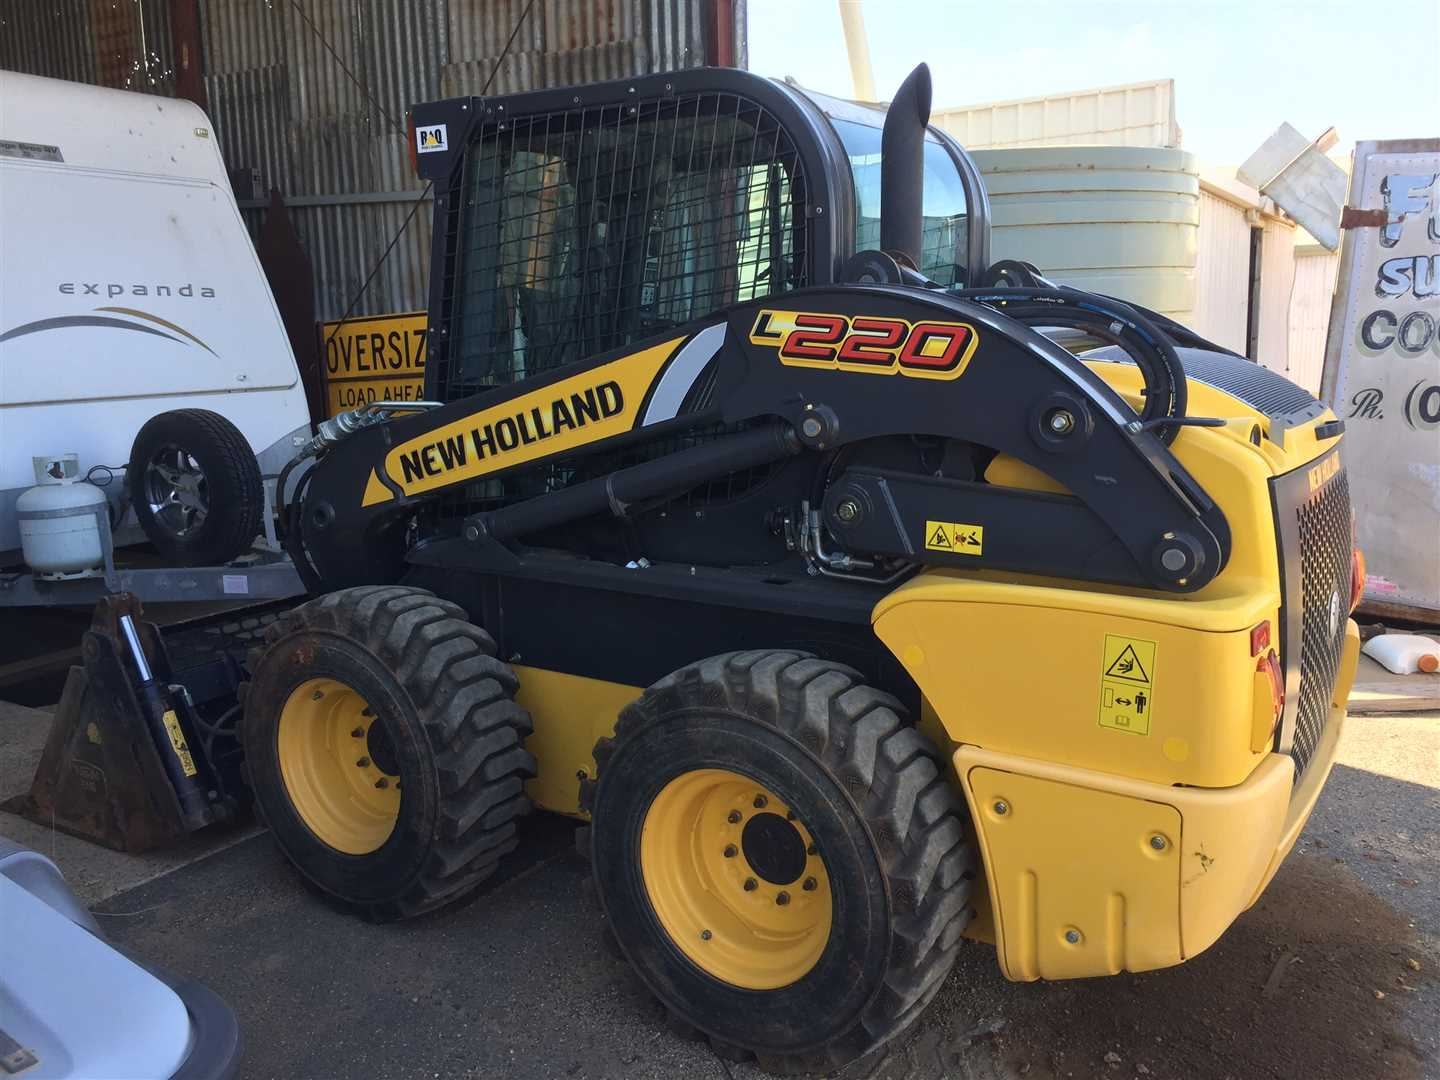 NH L220 skid steer loader